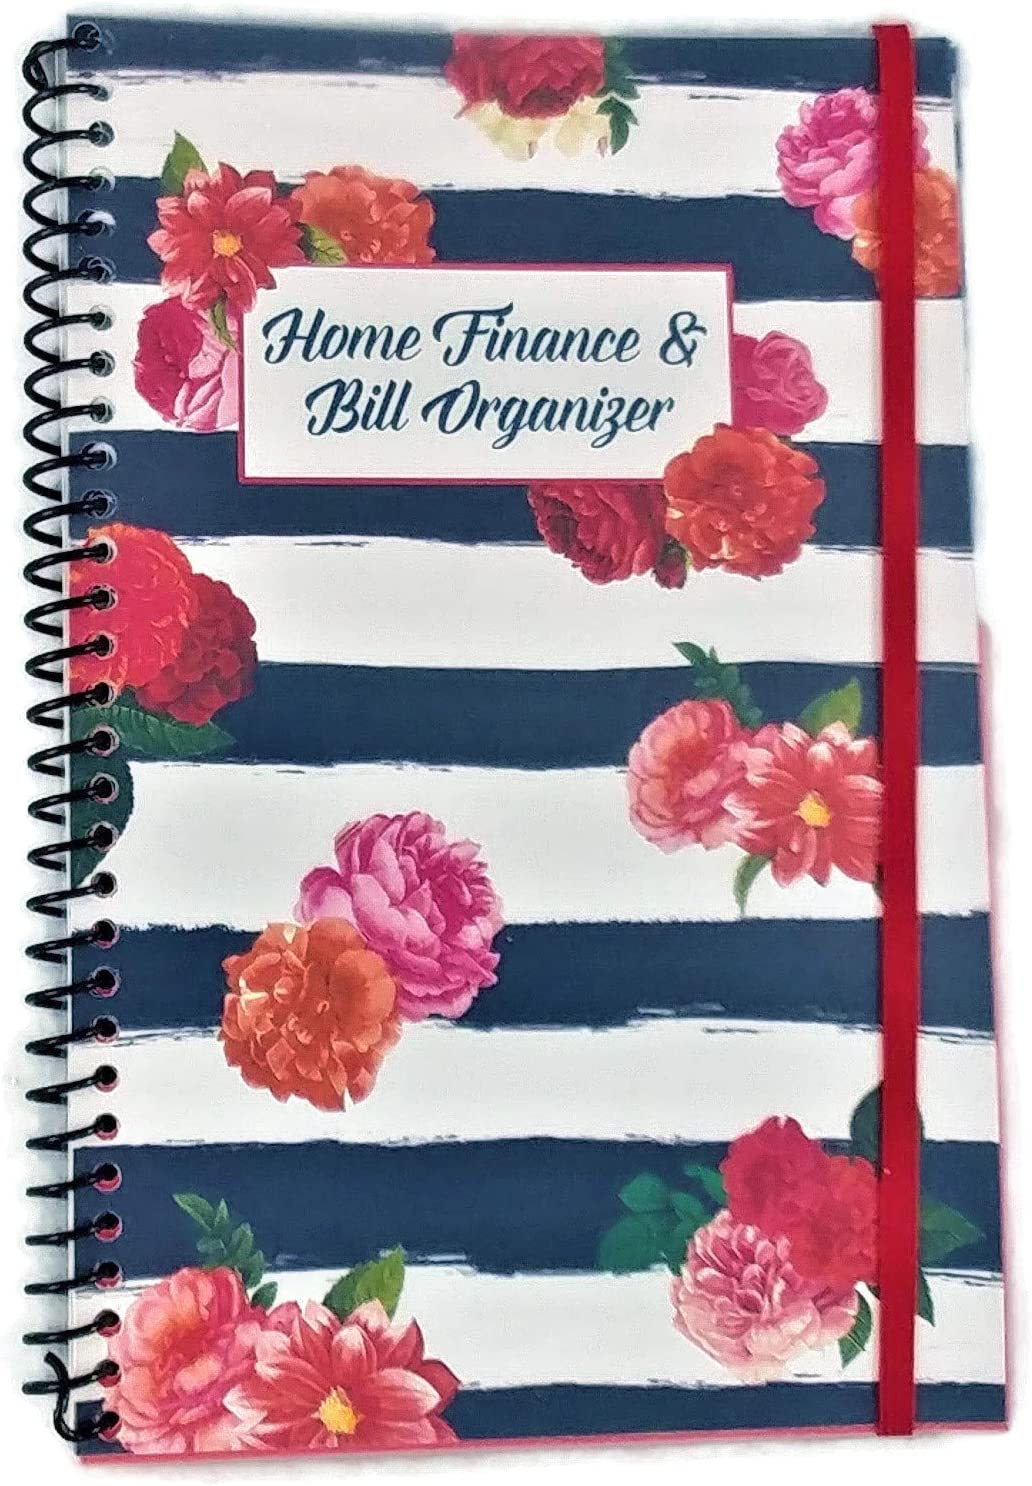 Home Finance Bill Recommendation Spasm price Organizer with Pai on Flowers Black Pockets